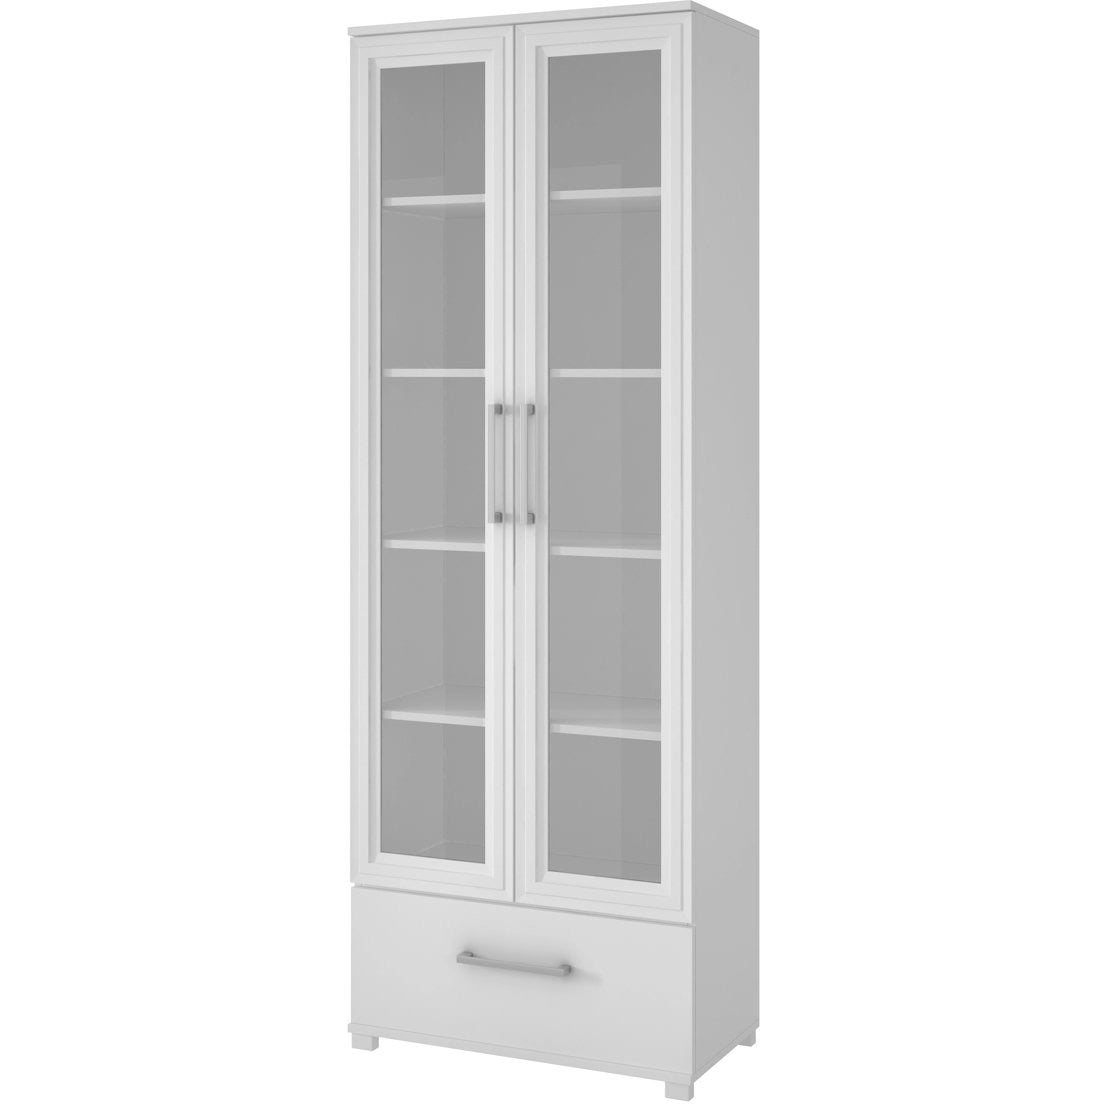 Accentuations by Manhattan Comfort Serra 1.0 - 5-Shelf Bookcase in White-Minimal & Modern